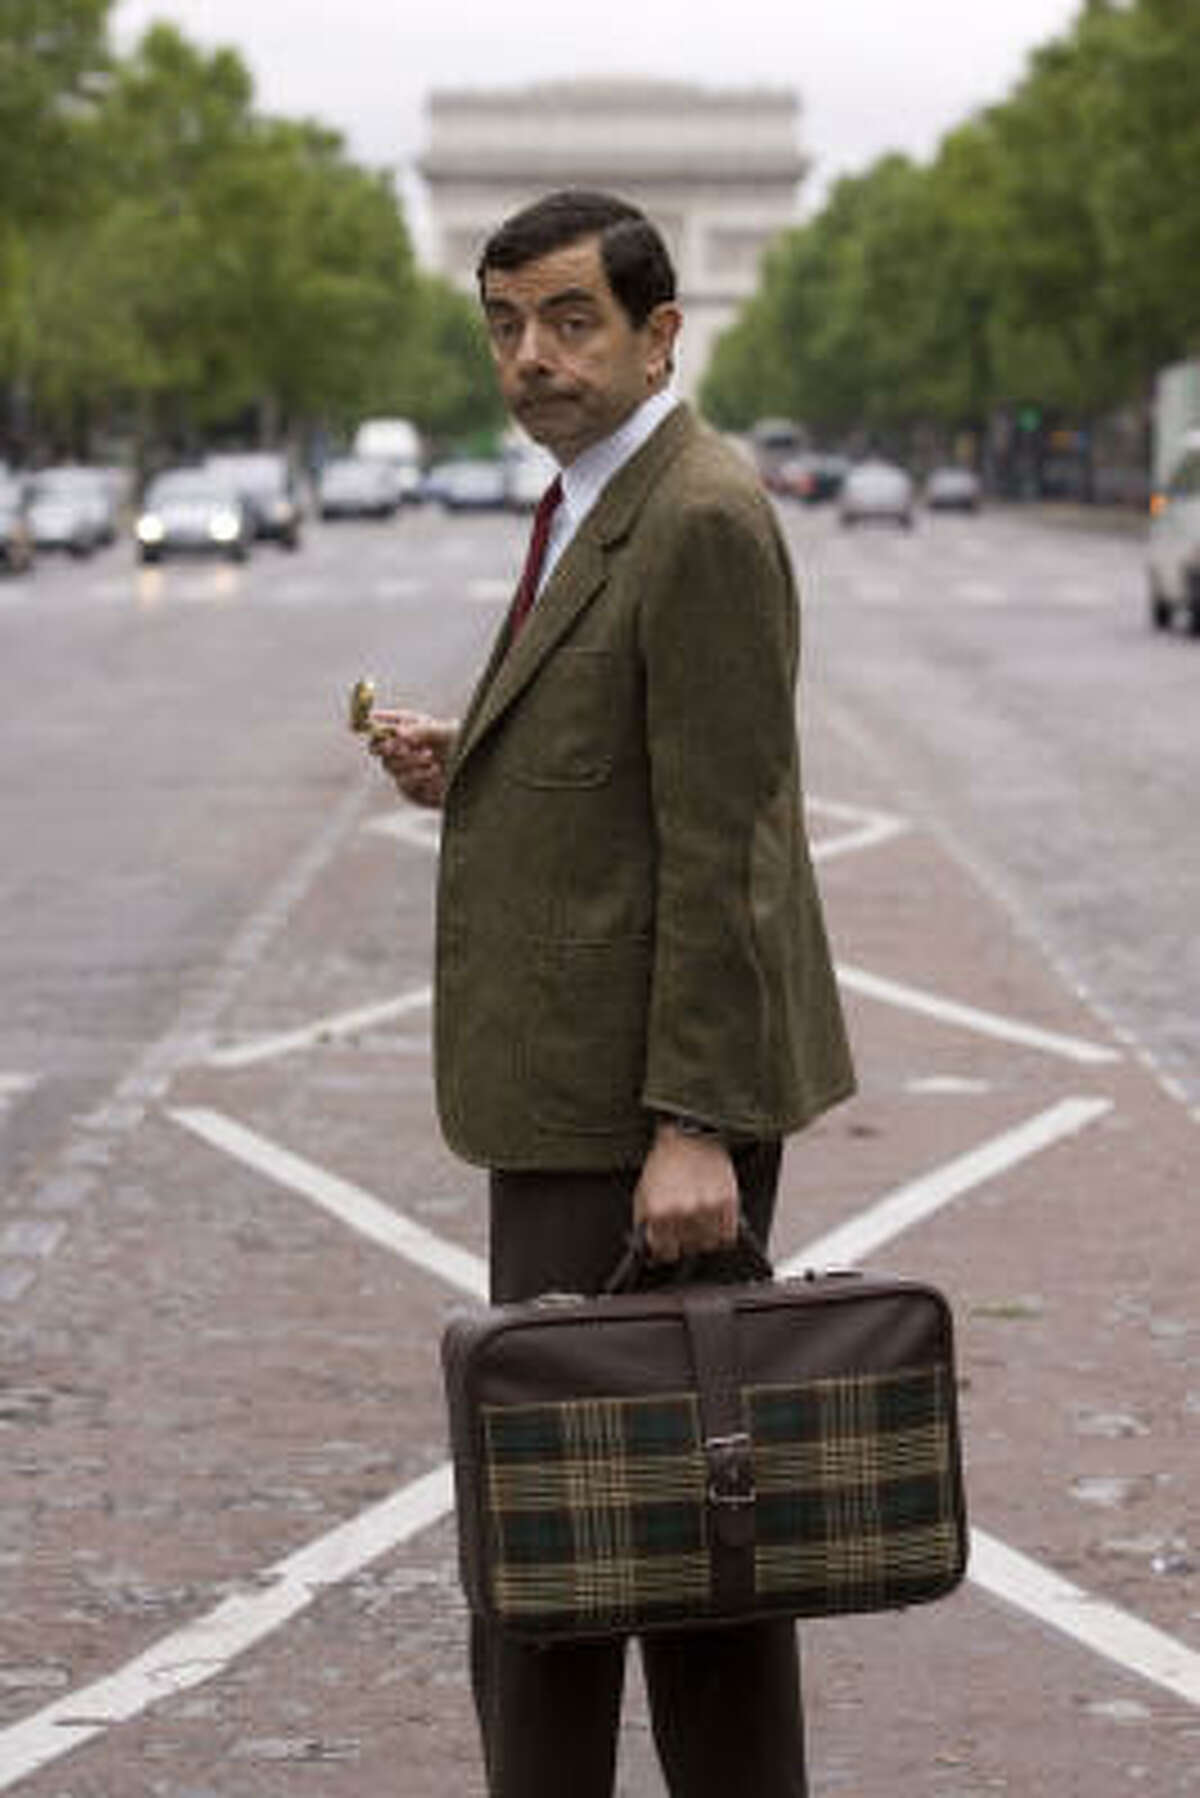 Rowan Atkinson is back in the iconic role that made him an international star in Mr. Bean's Holiday.